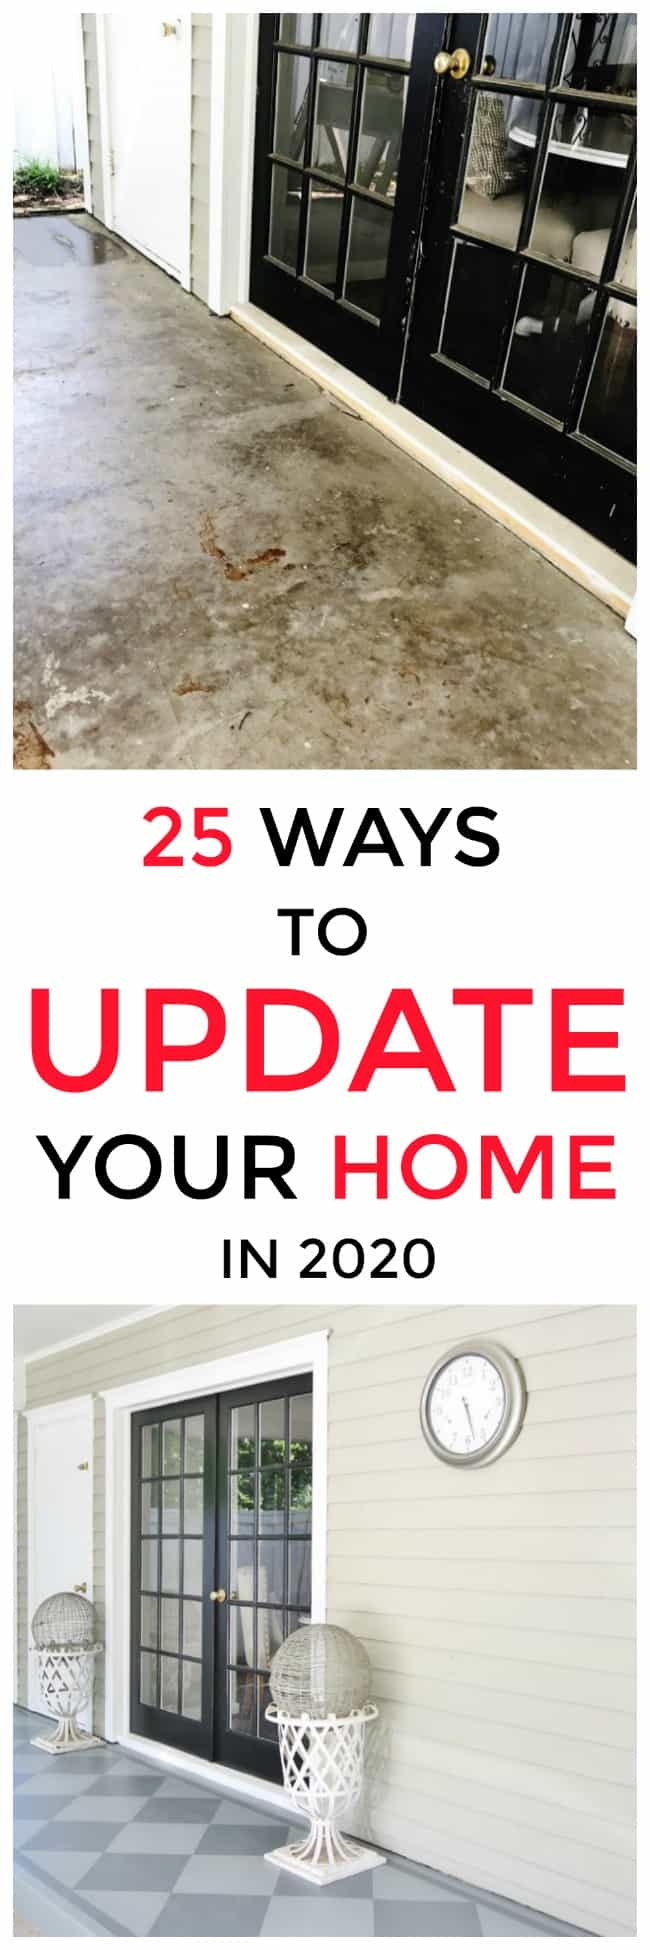 update your home promo graphic